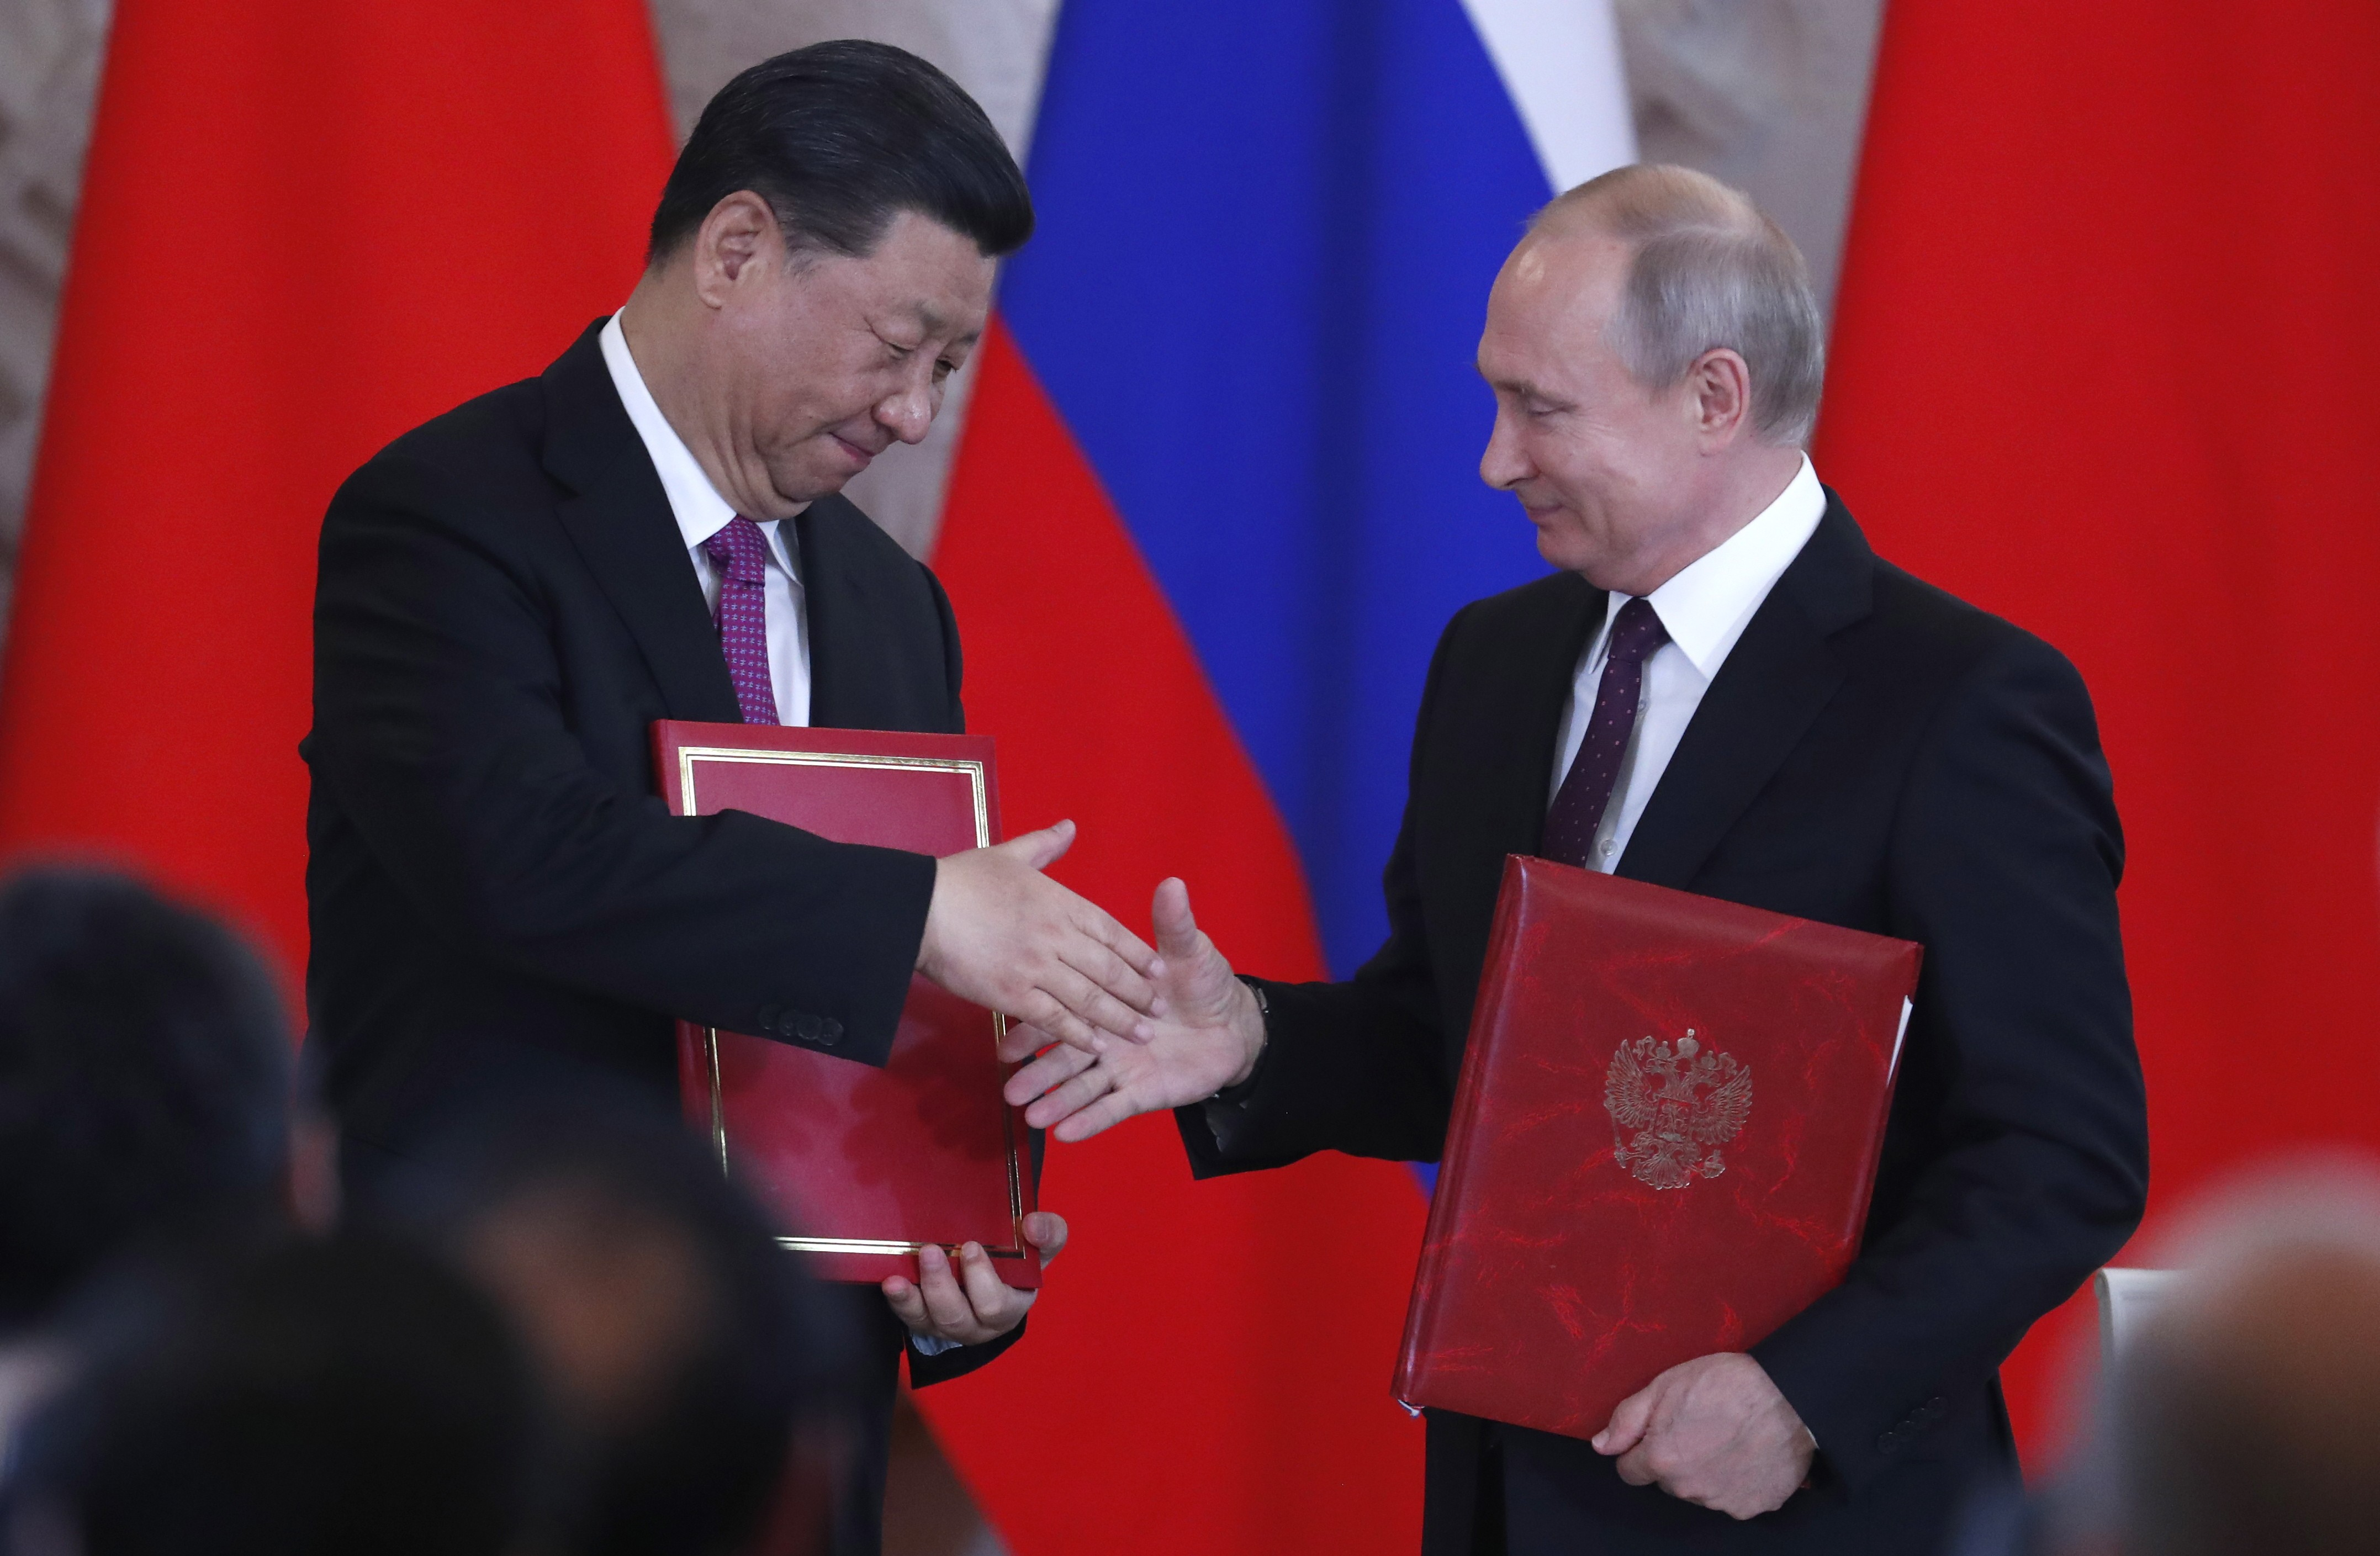 Russia S Vladimir Putin Points To Us 20 Billion Worth Of Deals As Evidence Of Close Ties With China South China Morning Post